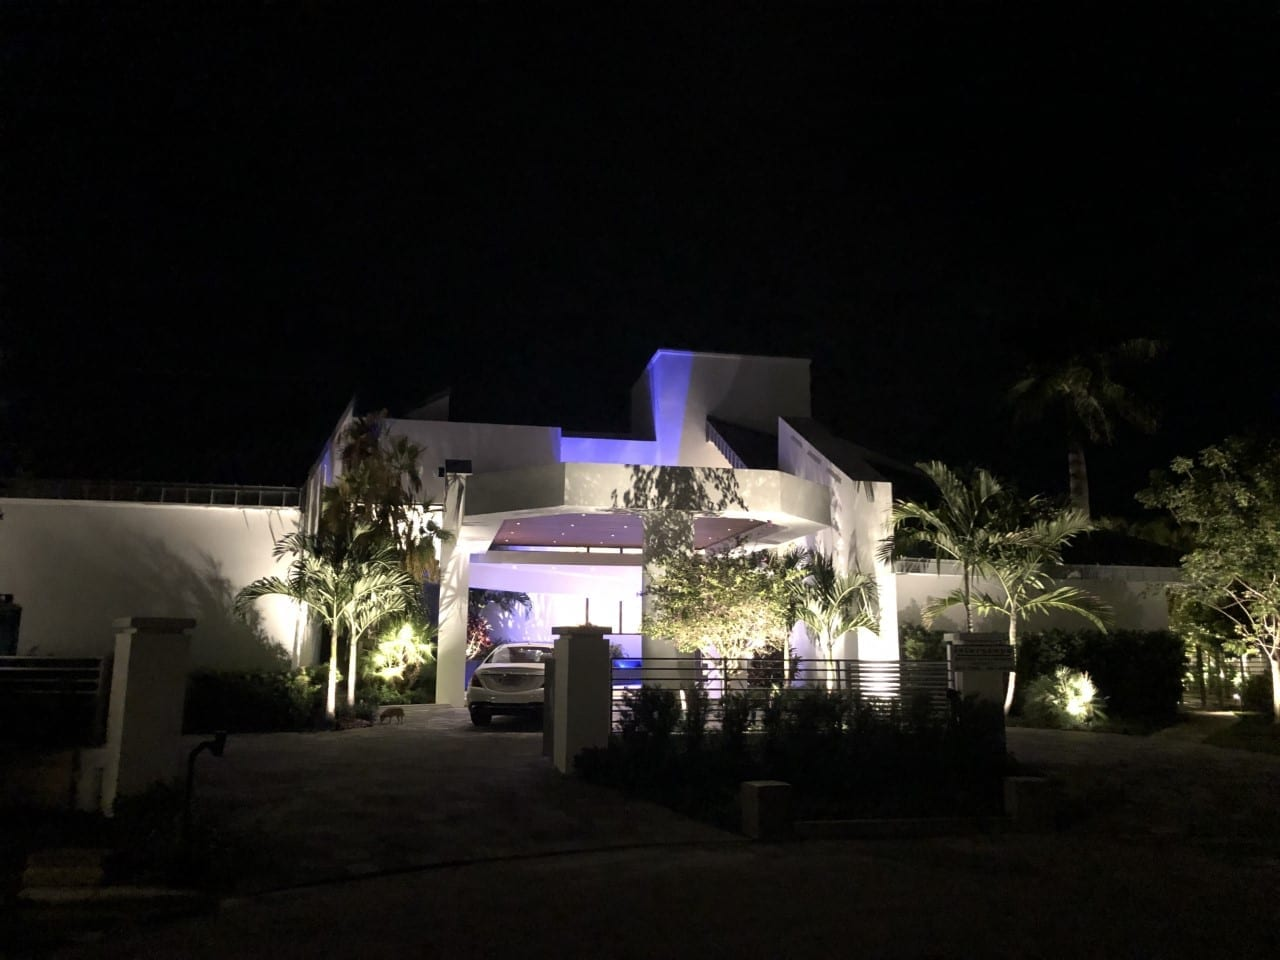 Miami - Biscayne Bay - Residential Landscape Lighting-Illumination FL